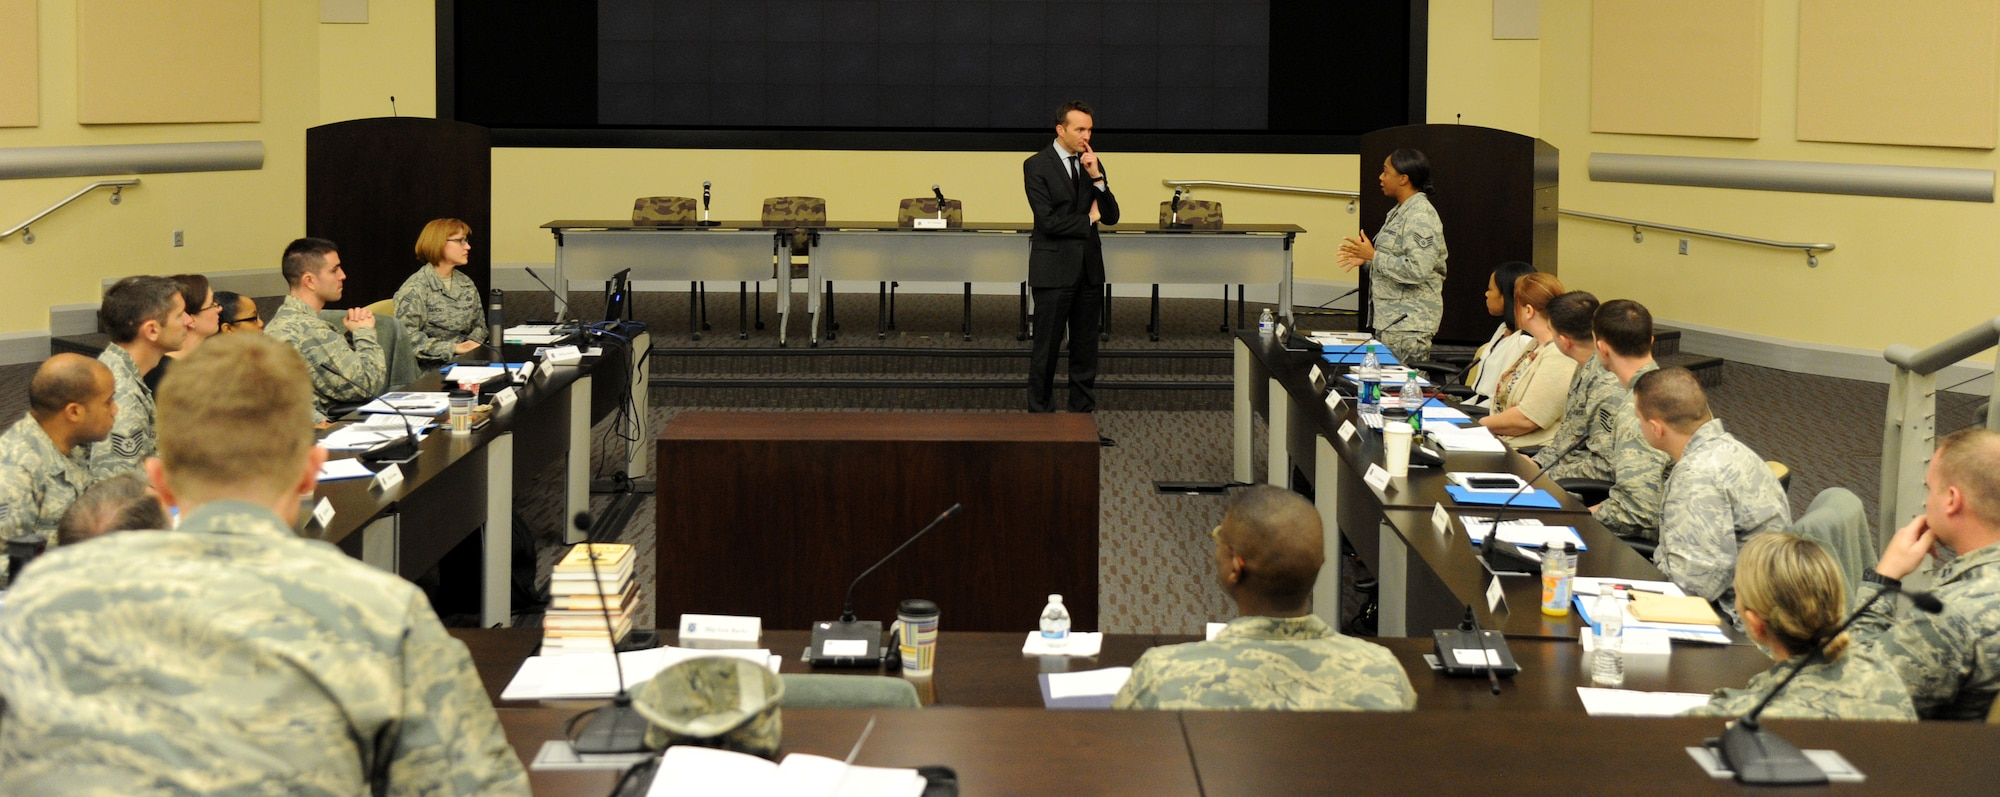 Eric Fanning, the under secretary of the Air Force, listens as Staff Sgt. Karin Nelson asks a questions about reserve duty during the annual Air Force District of Washington Capital Airman Seminar Dec. 16, 2014, on Joint Base Andrews, Md.,. Fifty-one enlisted, officer, and civilian Airmen were selected from across the National Capital Region to attend the four-day professional development seminar. Nelson, a reservist aerospace medical technical assigned to the 459th Air Refueling Wing, is on active-duty orders at the AFDW. (U.S. Air Force photo/Master Sgt. Tammie Moore)